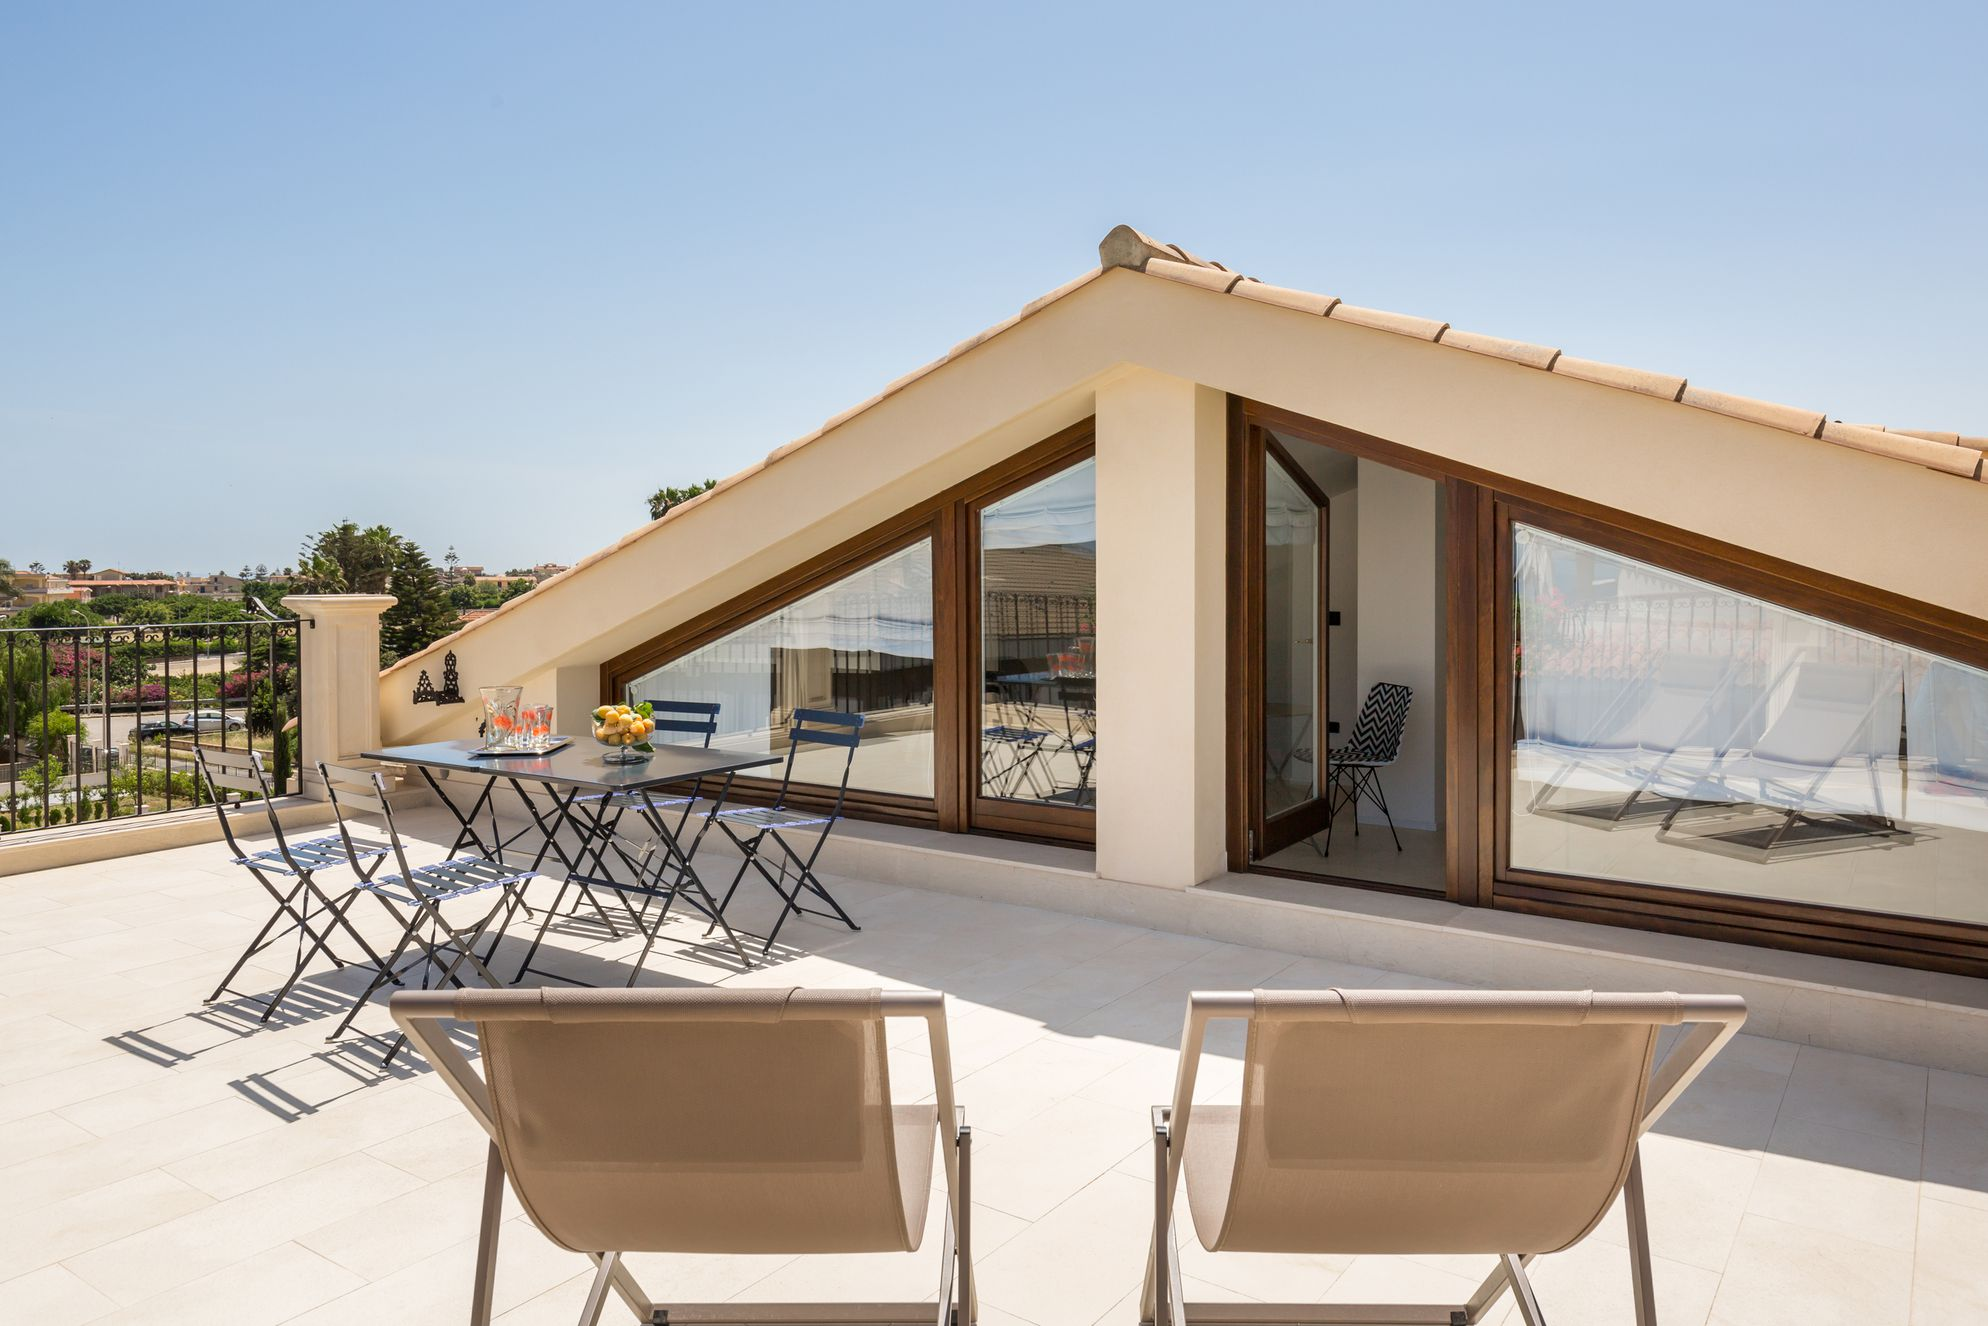 Roof top terrace on Villa Raphael with table and chairs for guests to eat